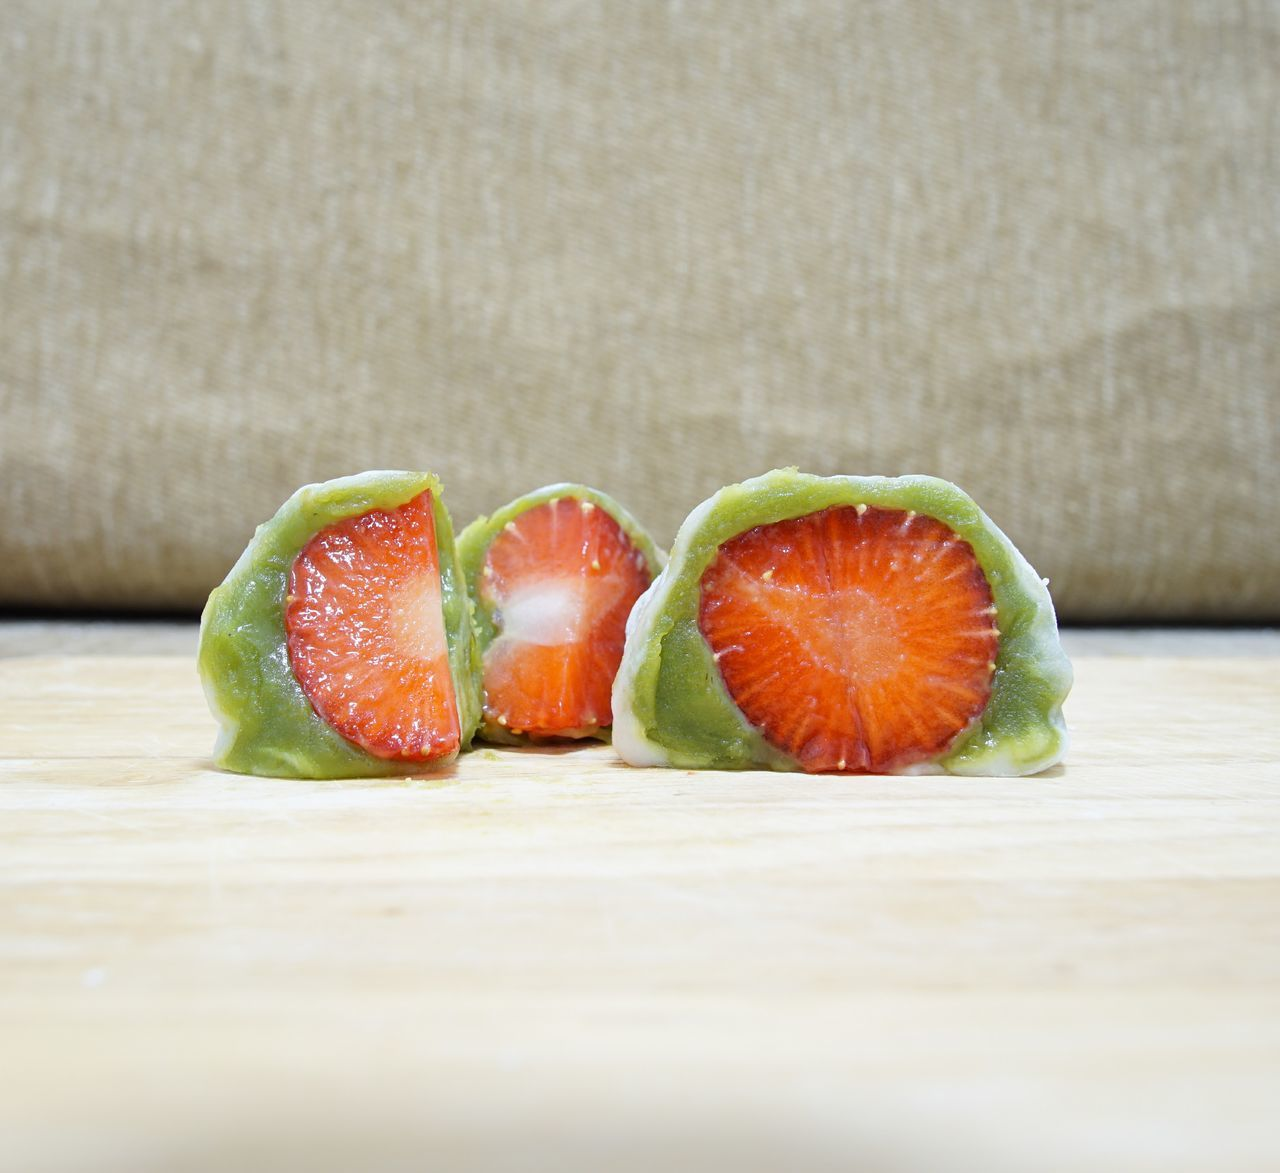 Mochi green tea with fresh strawberry. Its taste is really good, sweet and sour the one bite. Close-up Day Dessert Food Food And Drink Freshness Fruit Green Color Greentea Healthy Eating Indoors  Japnesedessert Mochi No People Ready-to-eat Red Ricecake SLICE Strawberry Sweet Table